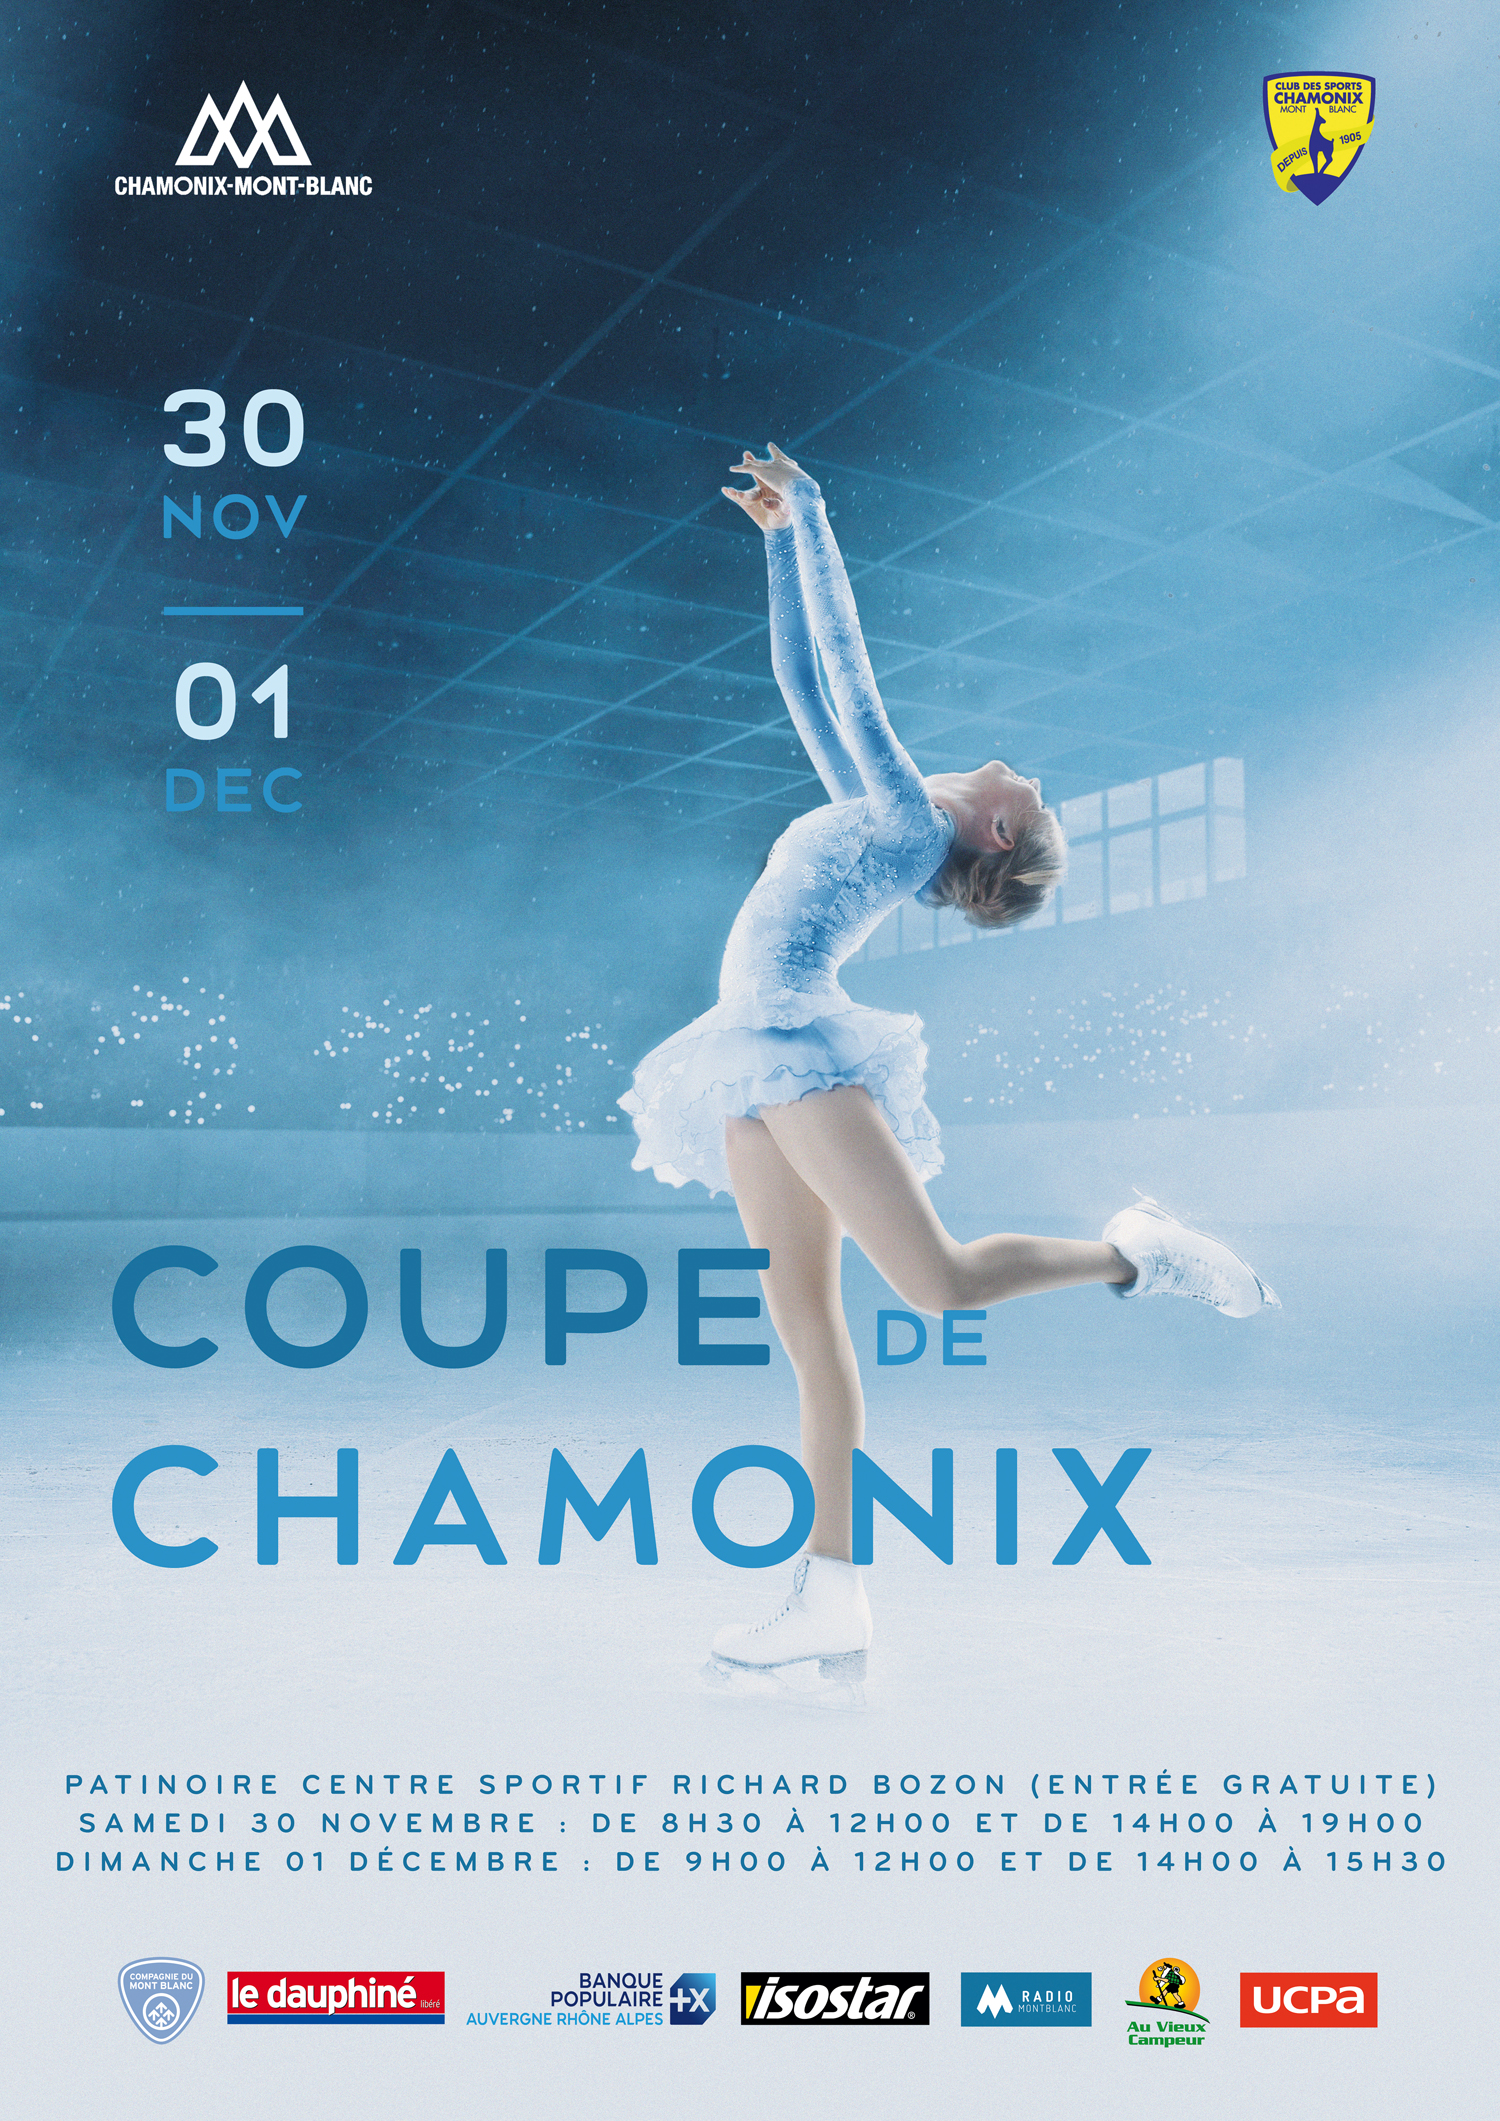 The Coupe de Chamonix is coming!